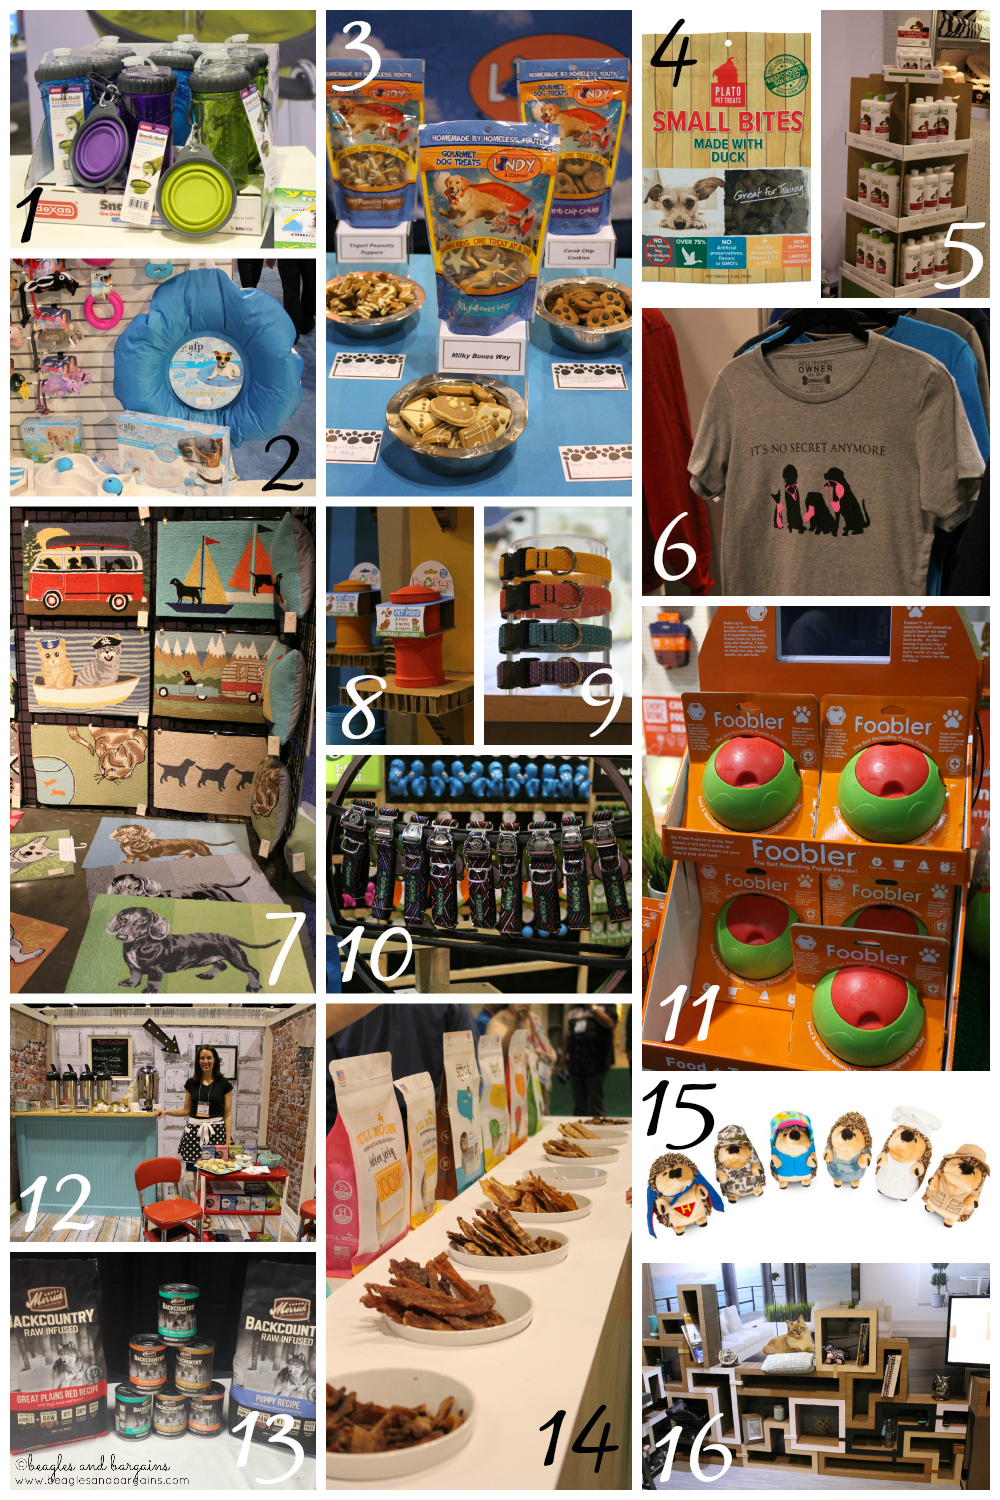 16 Great Pet Products from Global Pet Expo 2015